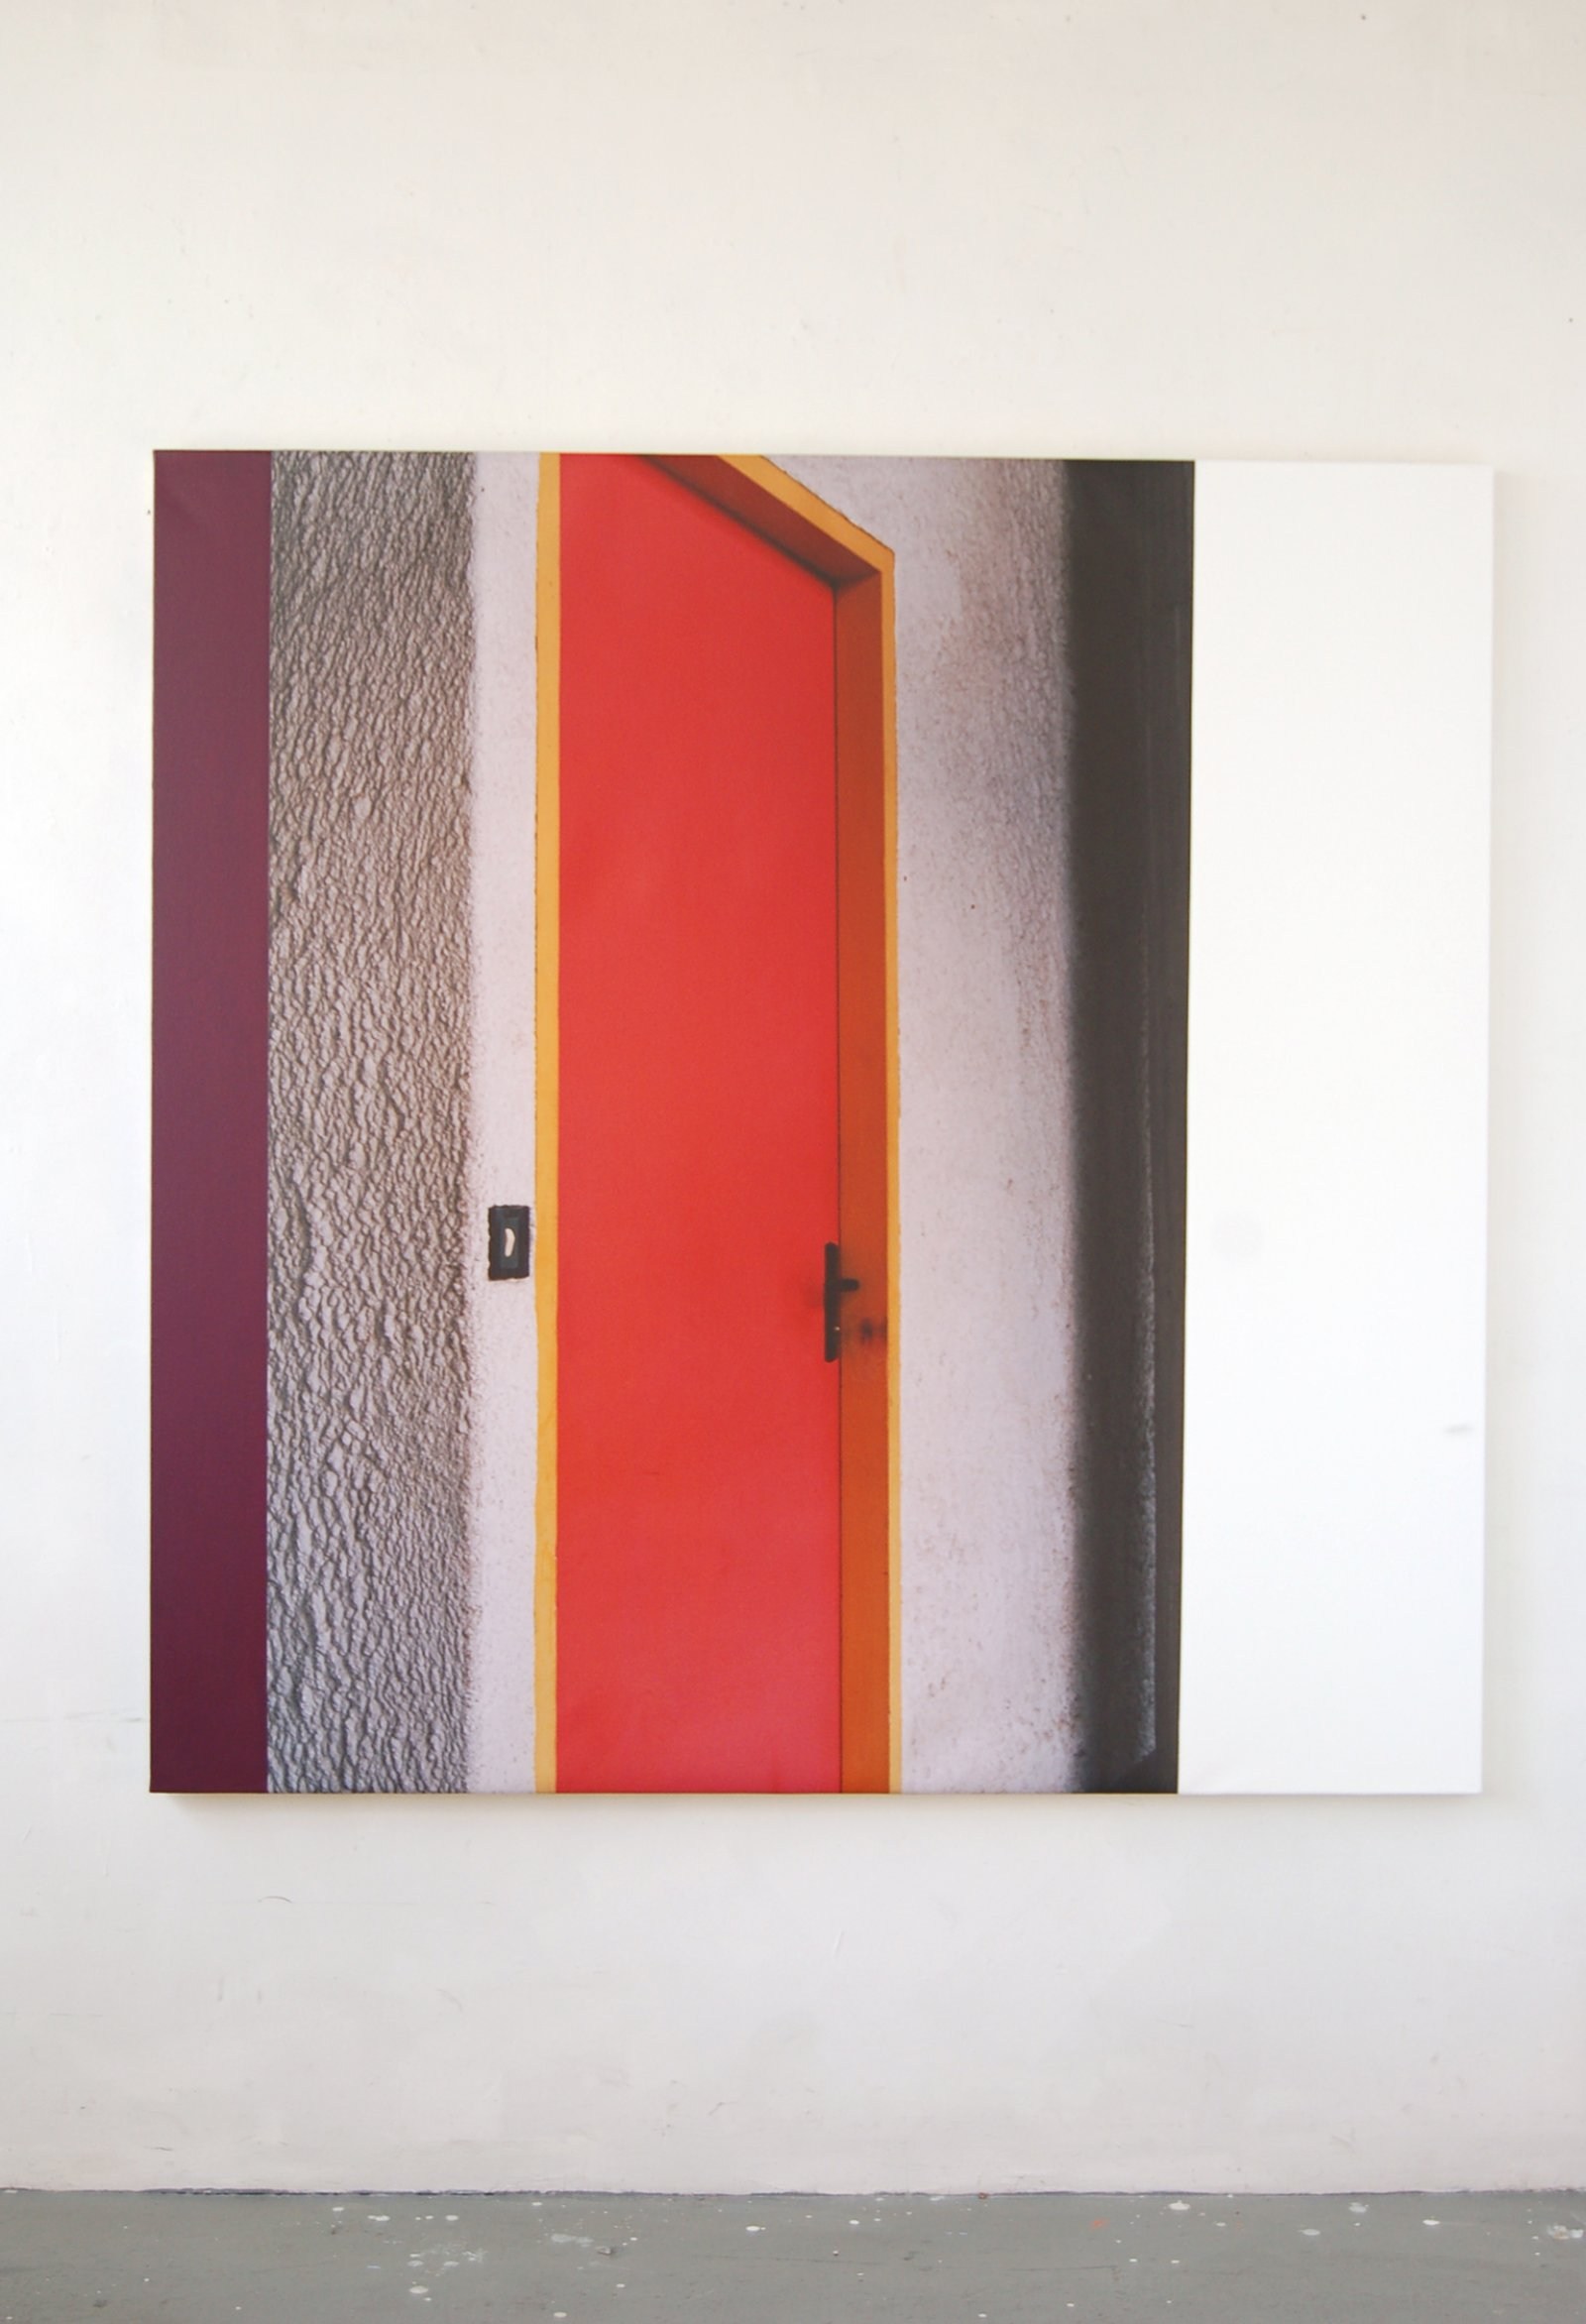 Ian Wallace,La Tourette (Exterior of Cell), 2006, photolaminate and acrylic on canvas, 60 x 60 in. (152 x 152 cm)